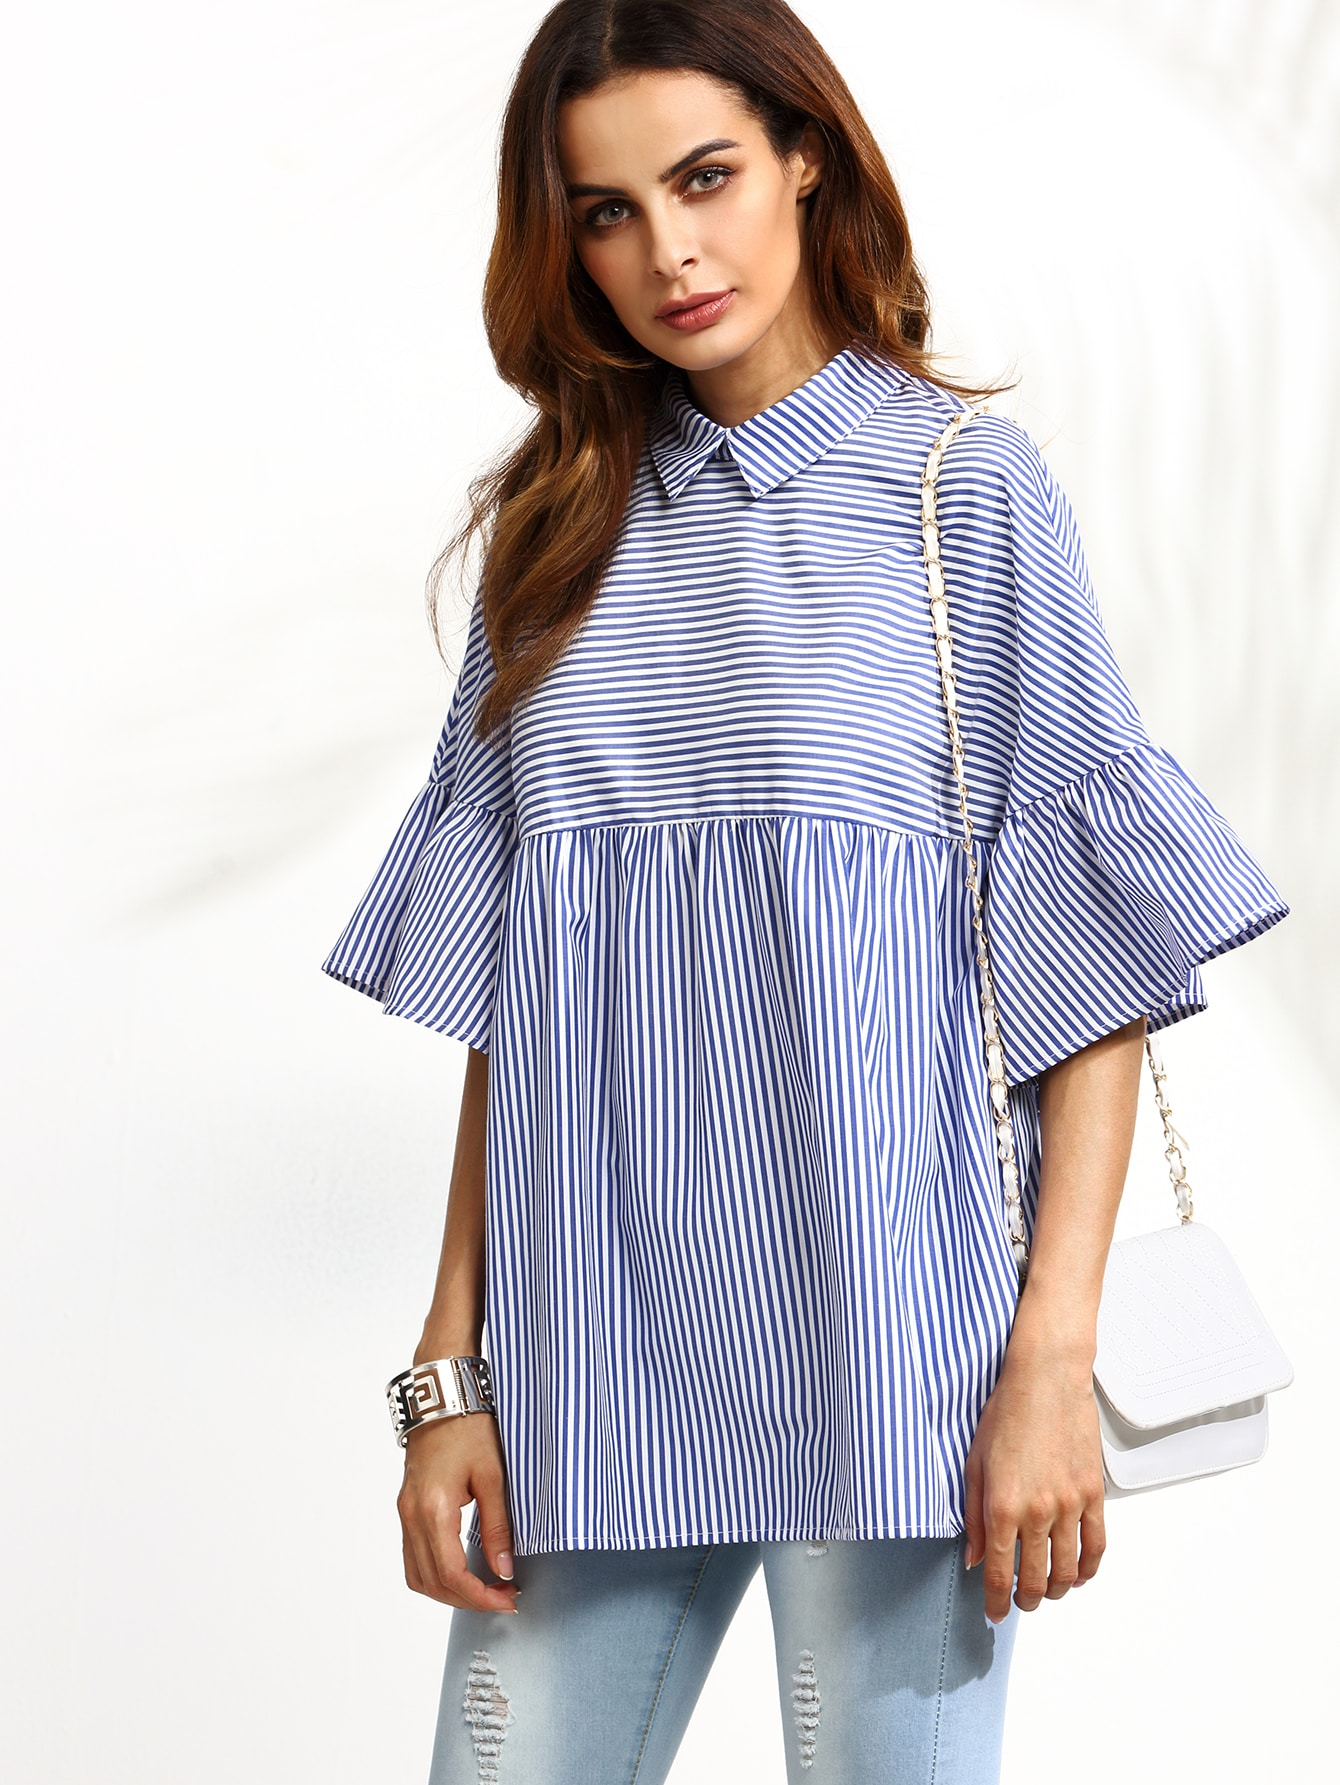 Blue Striped Ruffle Sleeve Babydoll Blouse pictures - Blue Striped Ruffle Sleeve Babydoll Blouse EmmaCloth-Women Fast